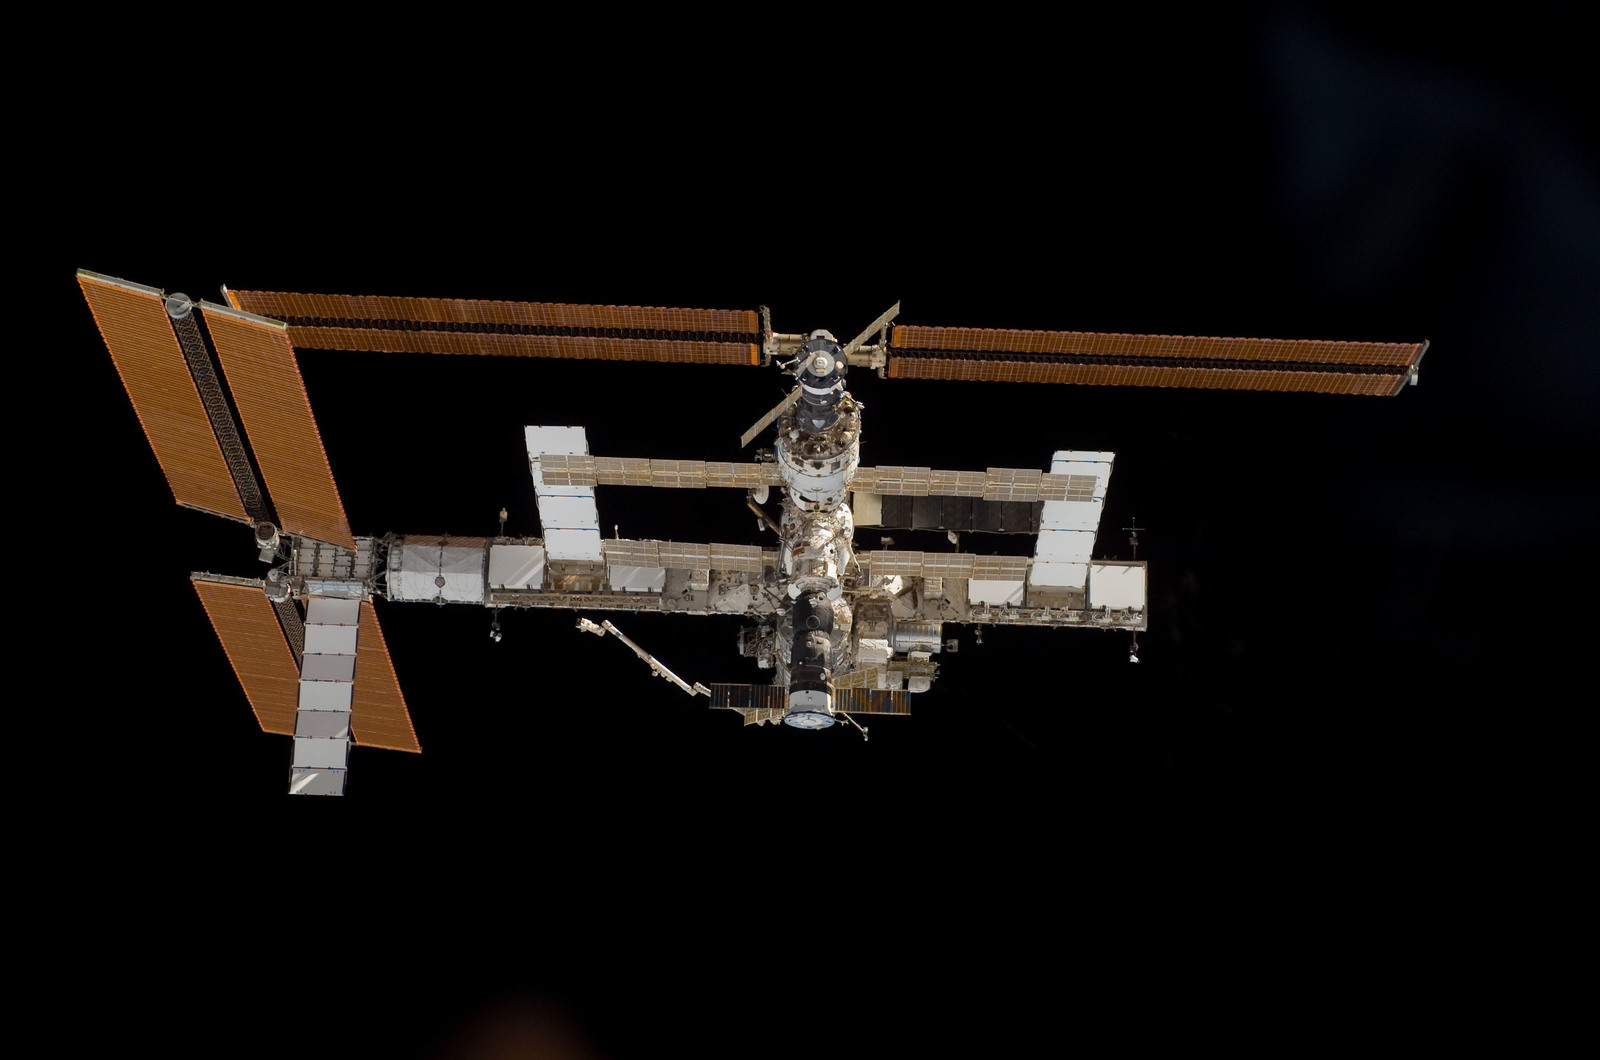 S115E06709 - STS-115 - Overall exterior view of the ISS during undocking and Flyaround Operations for STS-115 Space Shuttle Atlantis